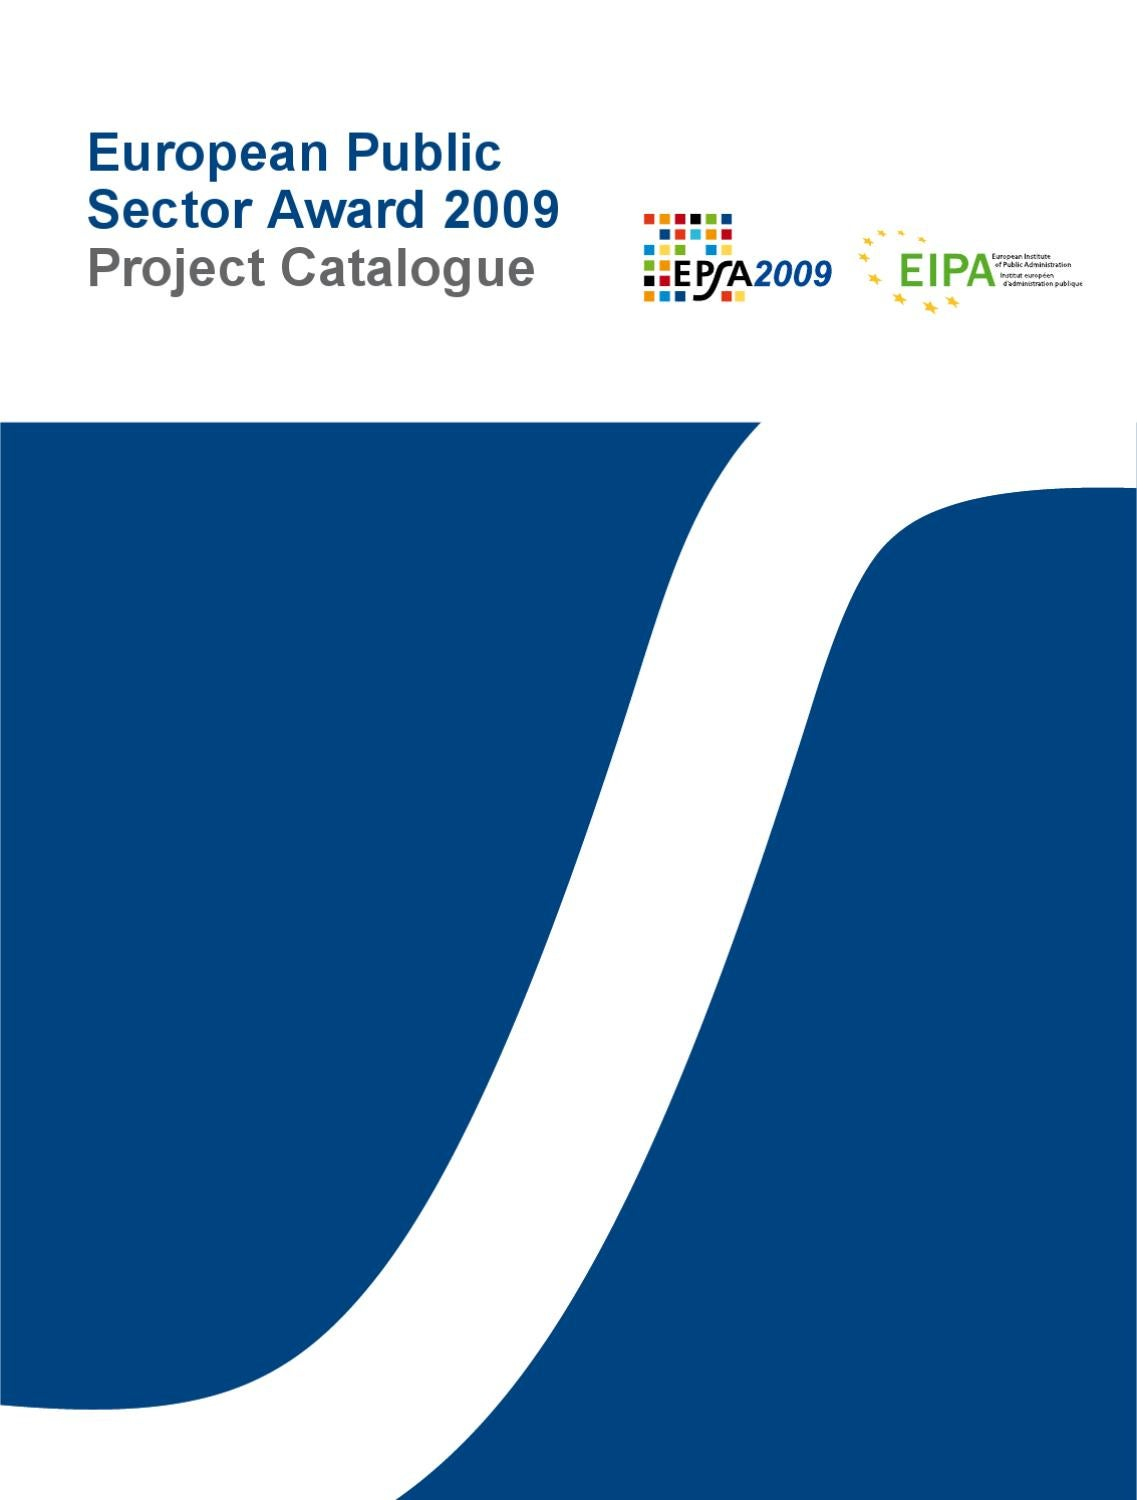 EPSA 2009 Project Catalogue by Claude Rongione - issuu